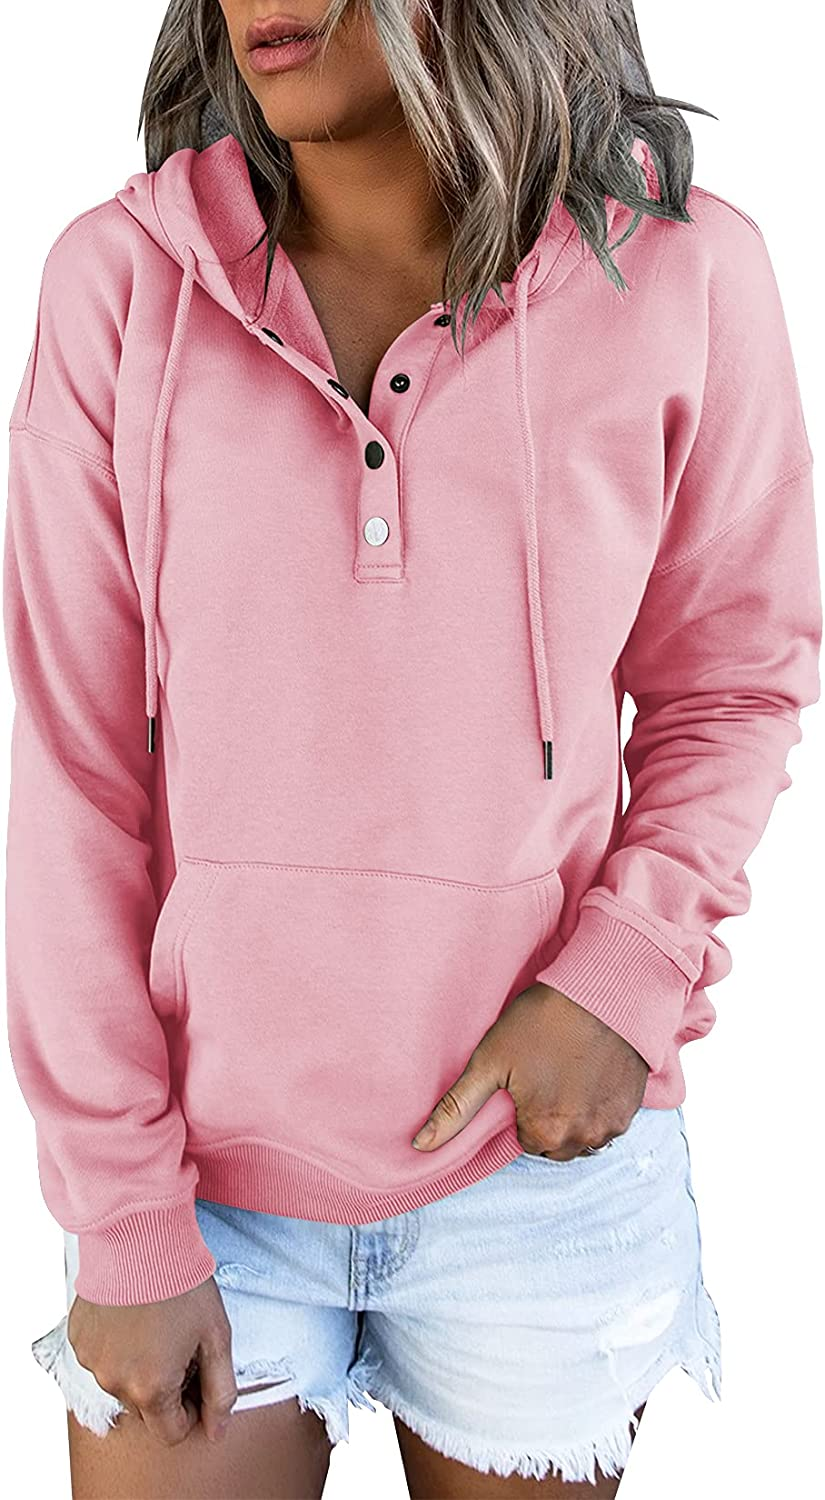 Vivitulip Women's Pullover Hoodies Tops Casual Button Down Long Sleeve Sweatshirts With Pocket